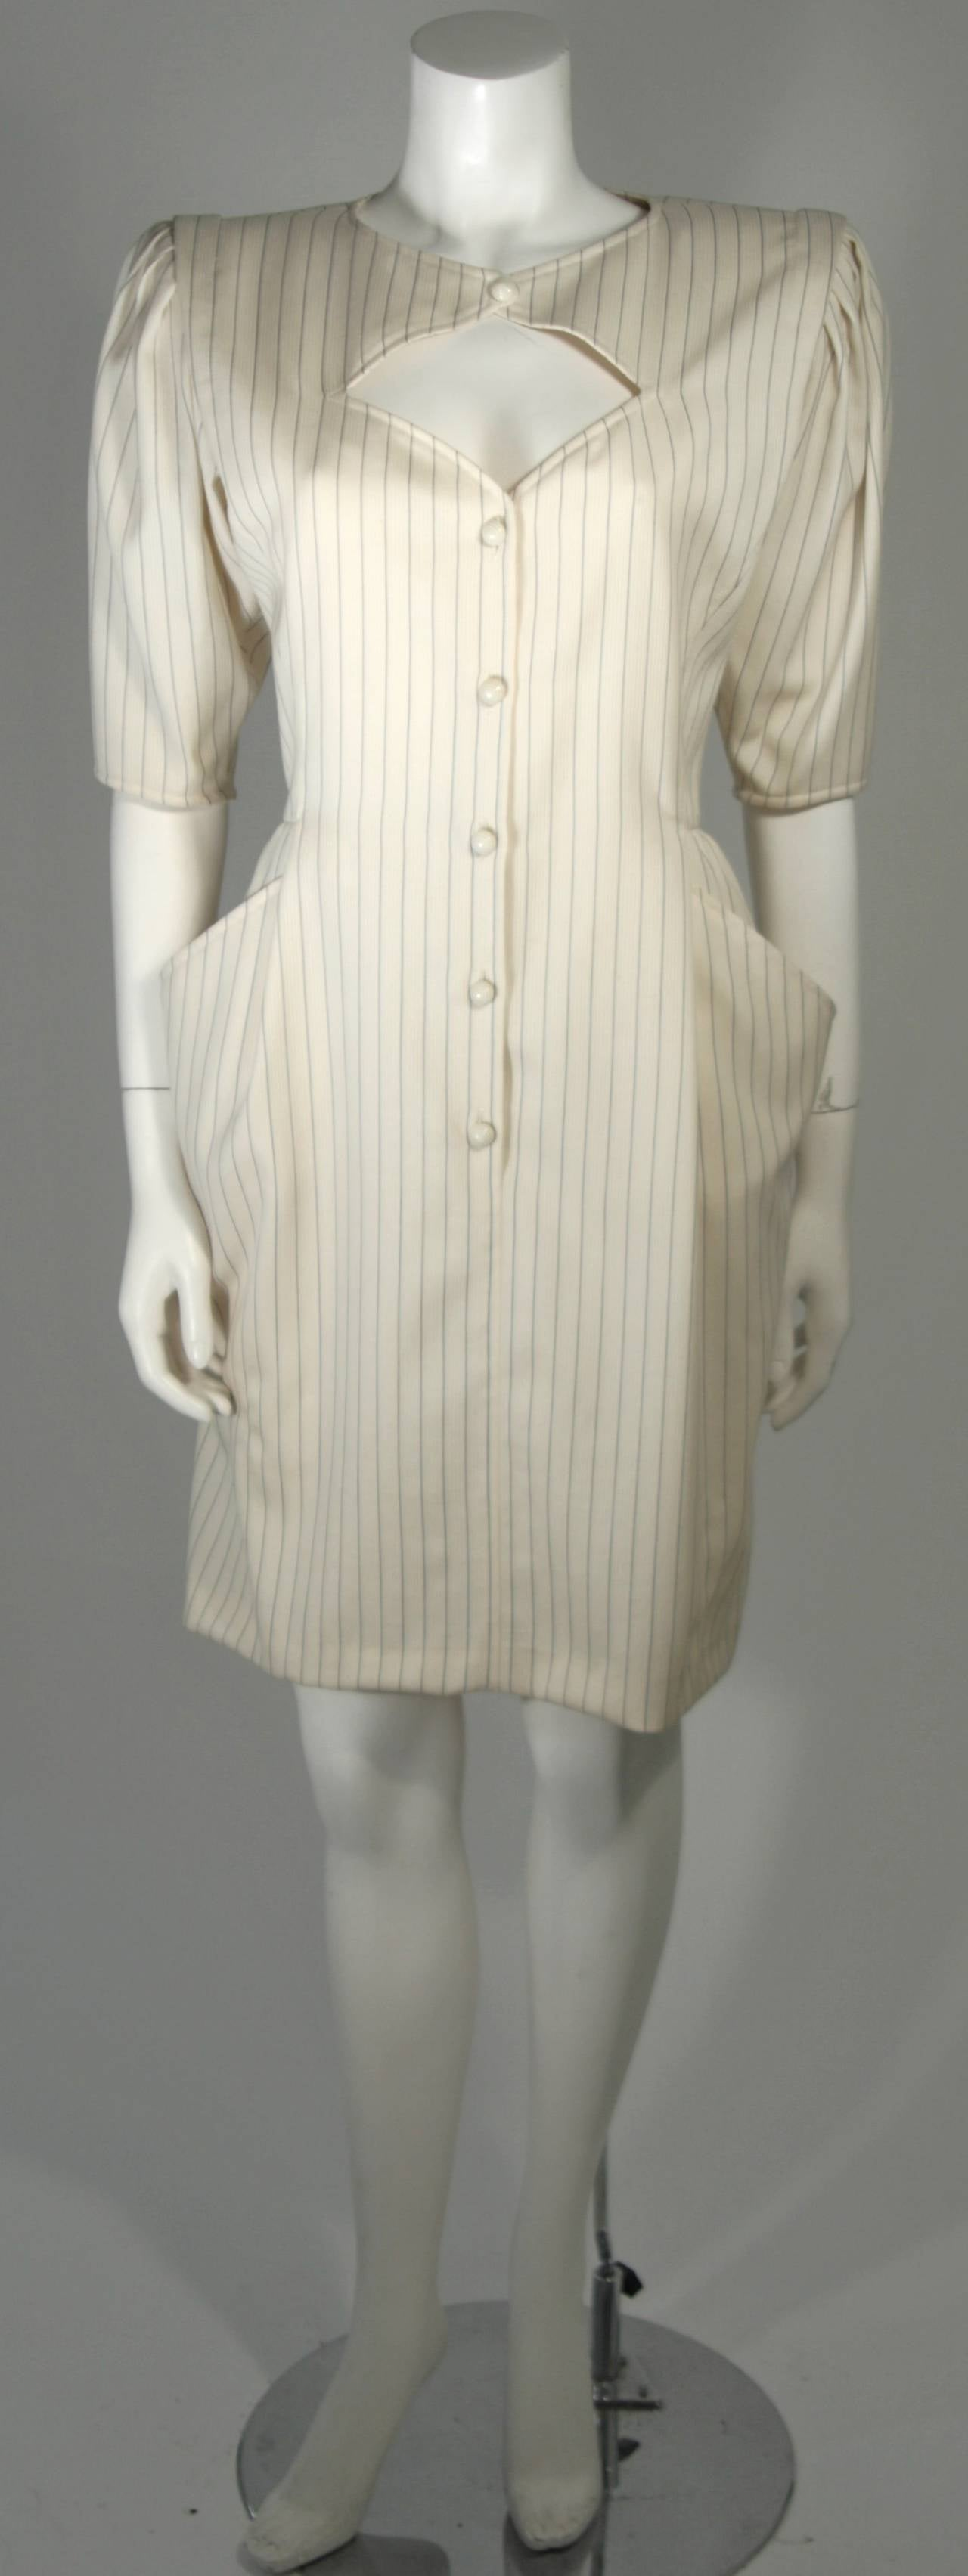 Ungaro Cream Pin Stripe Dress with Center Front Buttons 42 8 For Sale 3